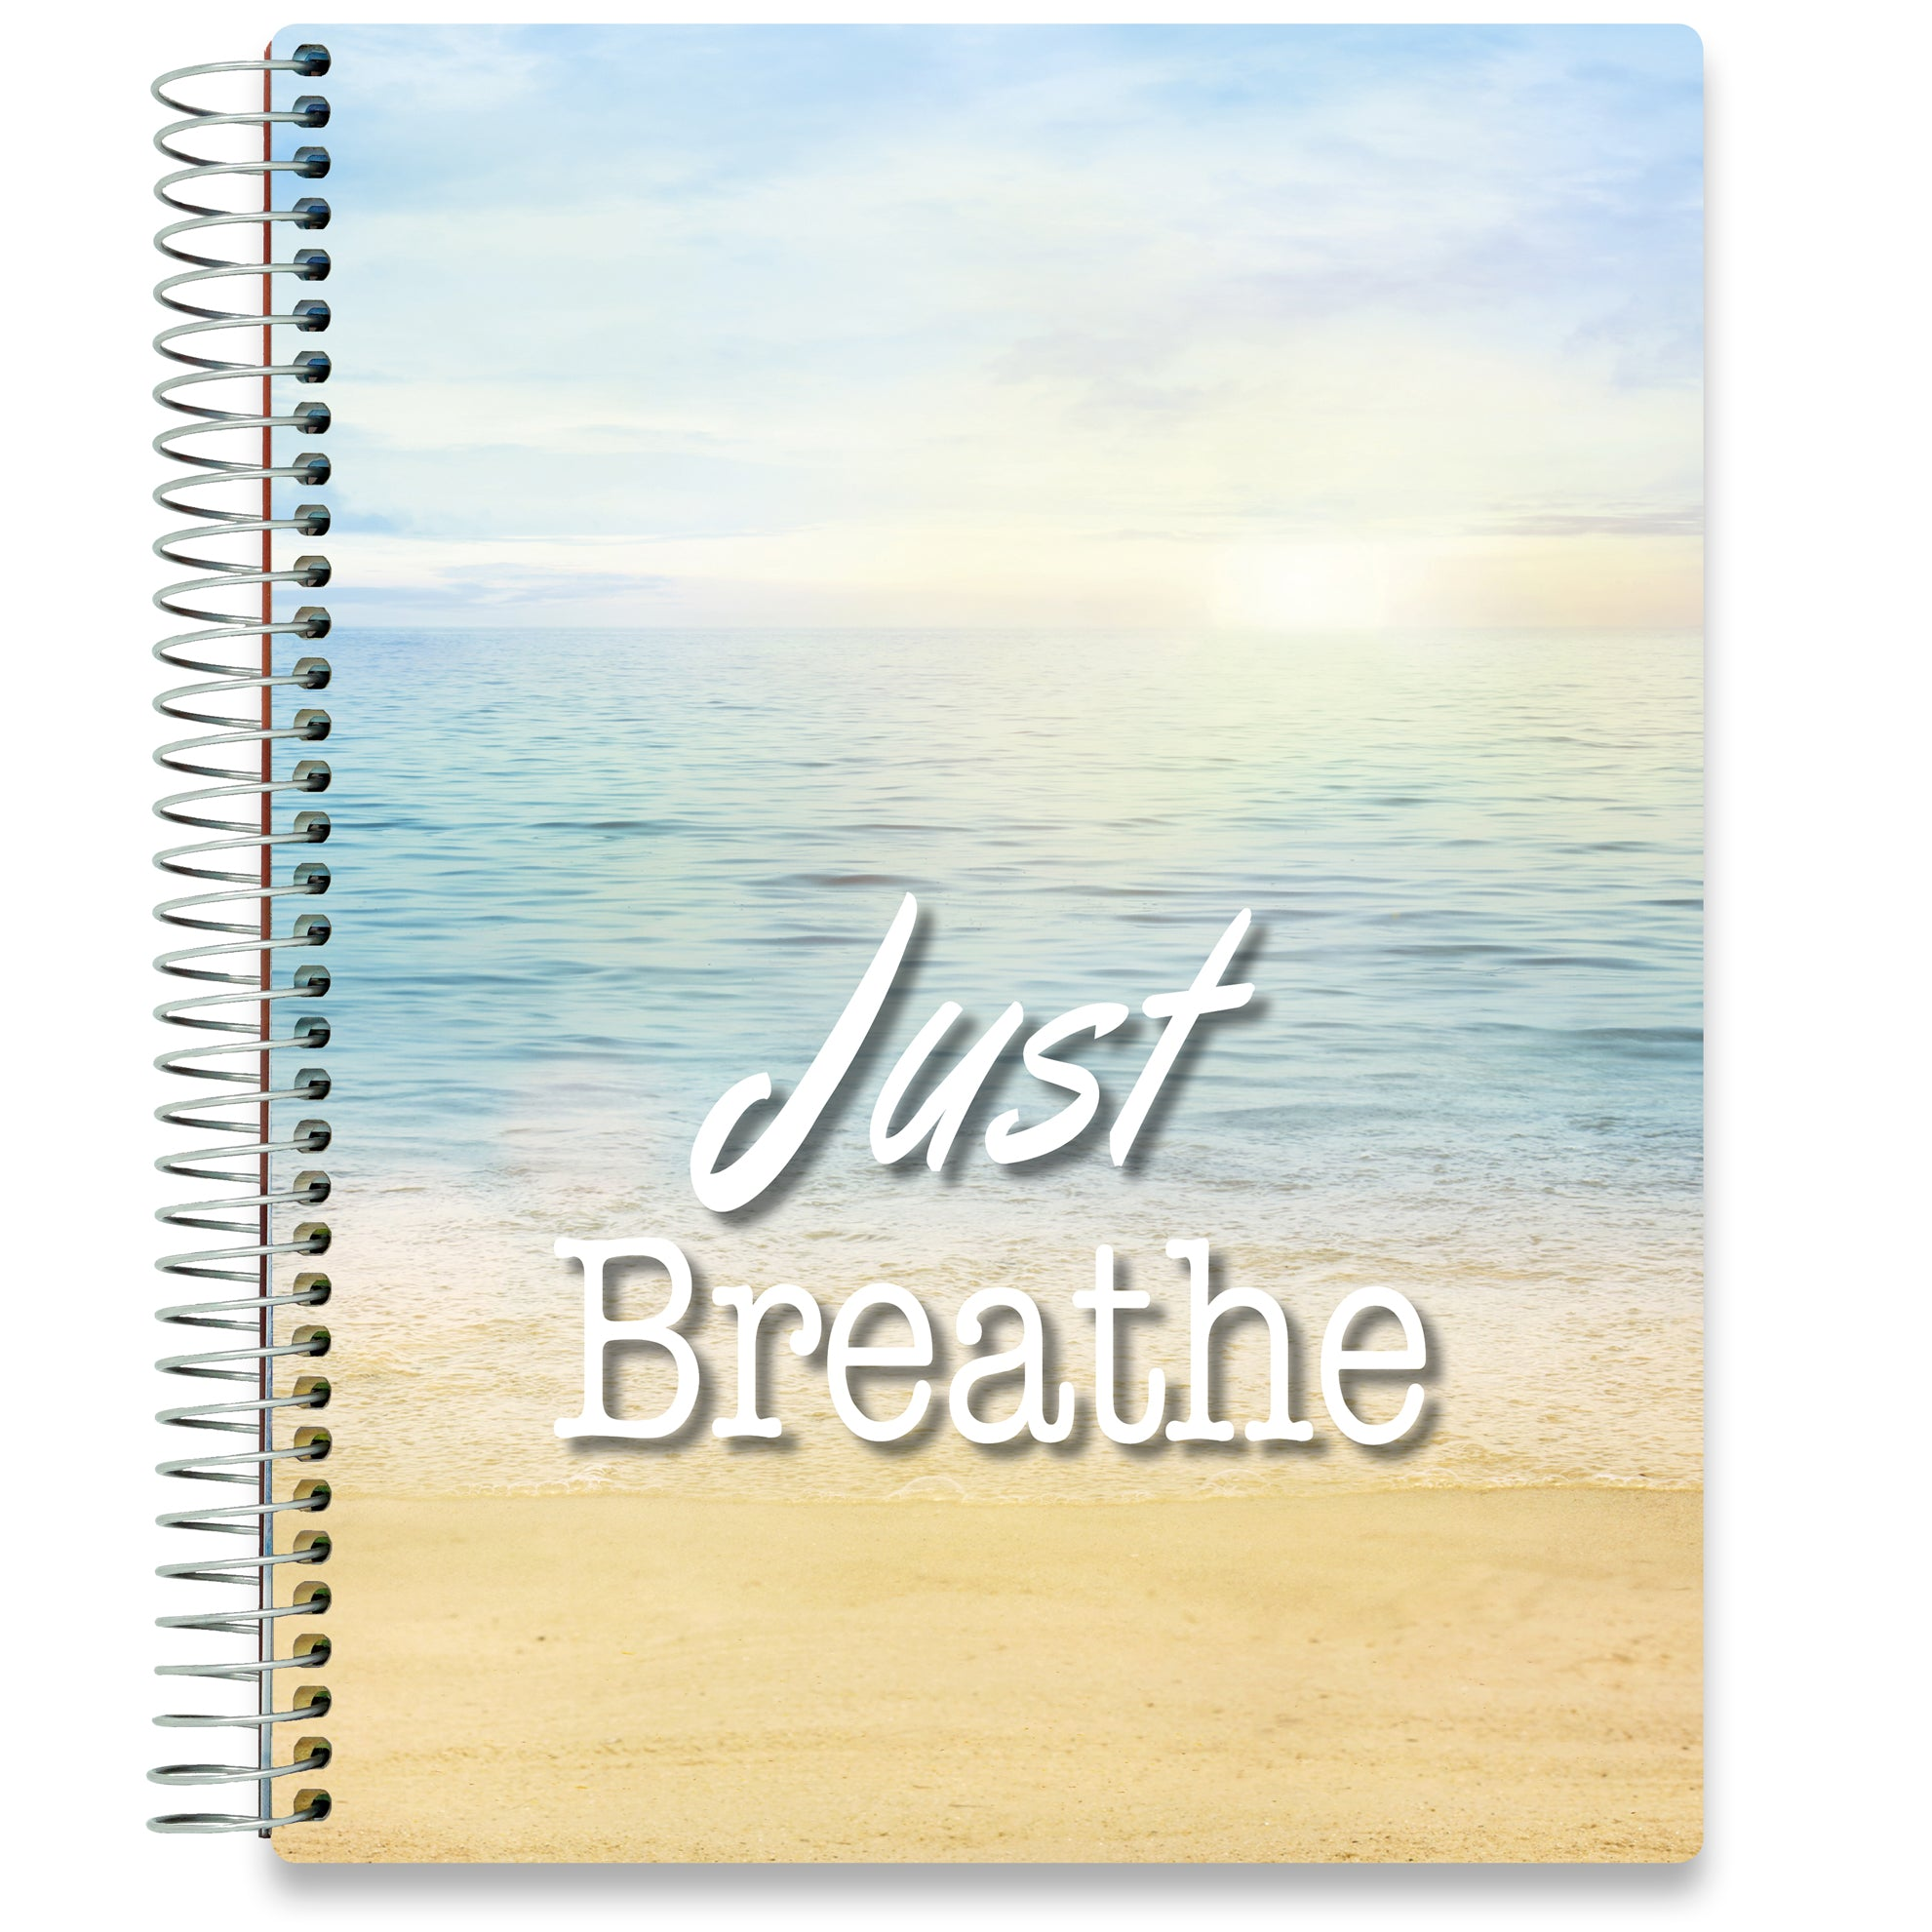 NEW: April 2020-2021 Planner - 8.5x11 - Just Breathe Beach-Office Product-Tools4Wisdom